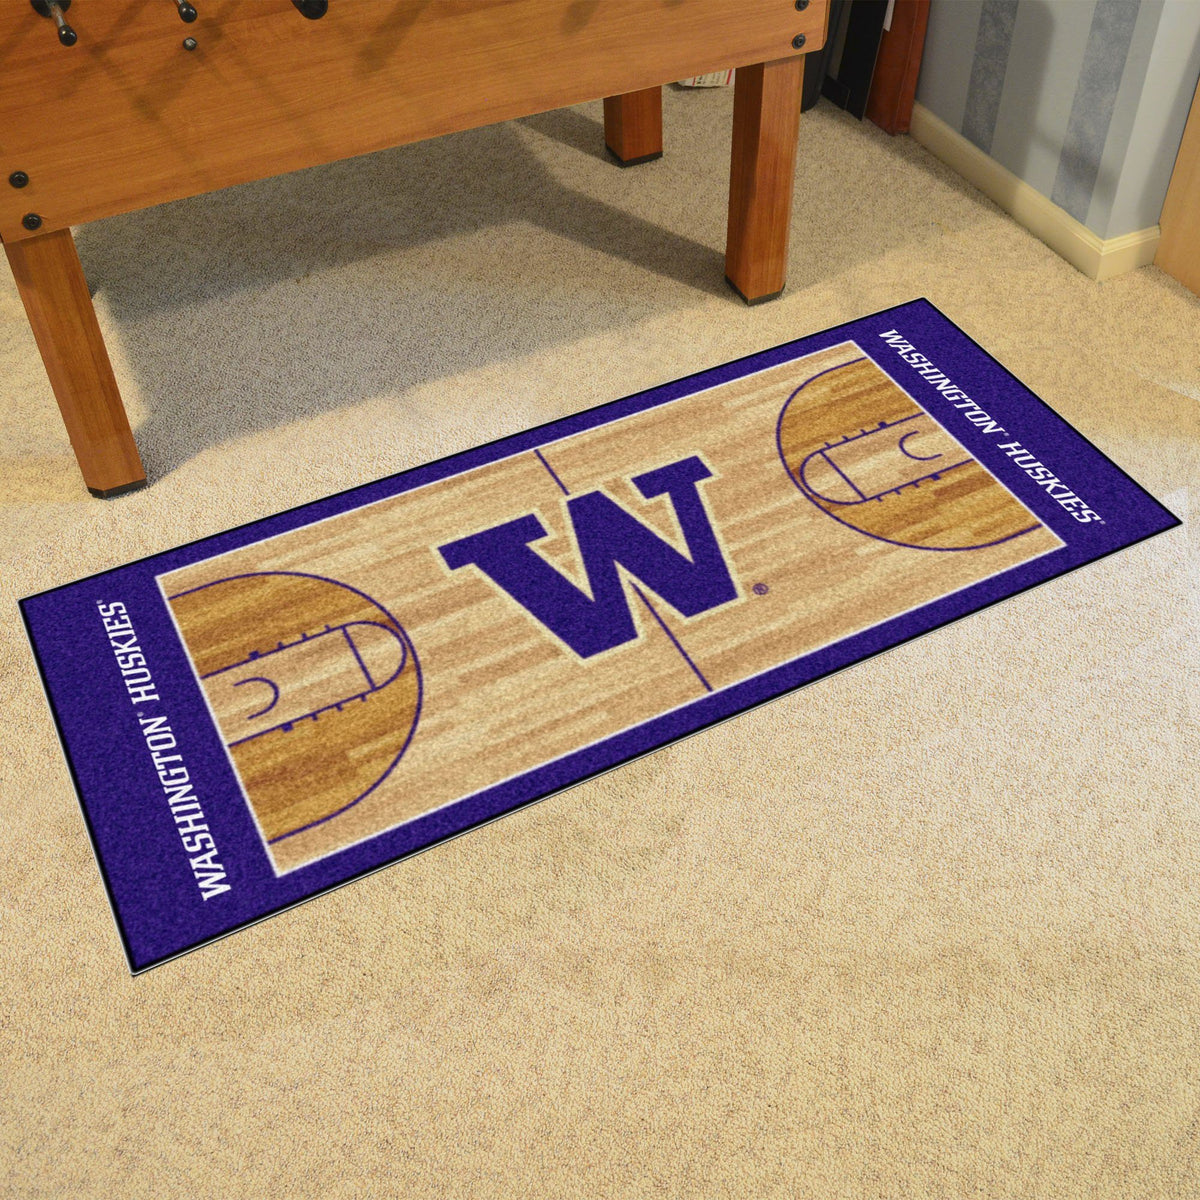 Collegiate - NCAA Basketball Runner Collegiate Mats, Rectangular Mats, NCAA Basketball Runner, Collegiate, Home Fan Mats Washington